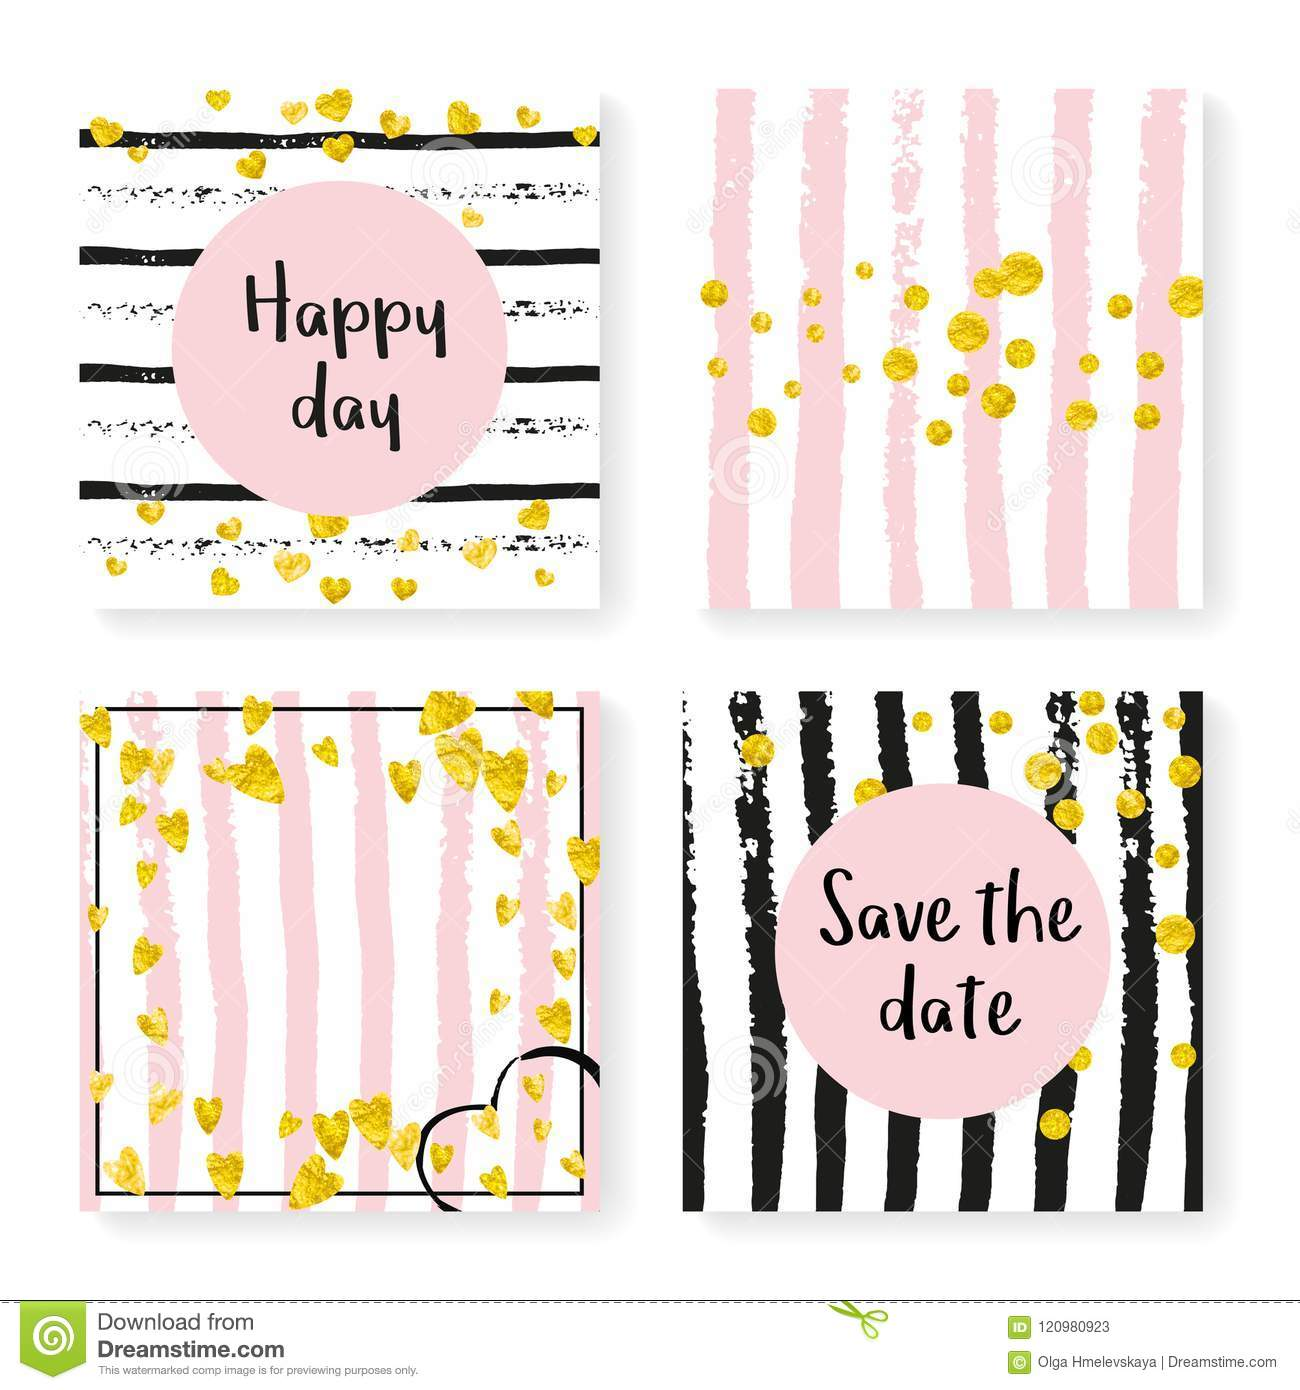 c22d653b2 Gold hearts and dots on black and pink background. Design with wedding  stripes for party